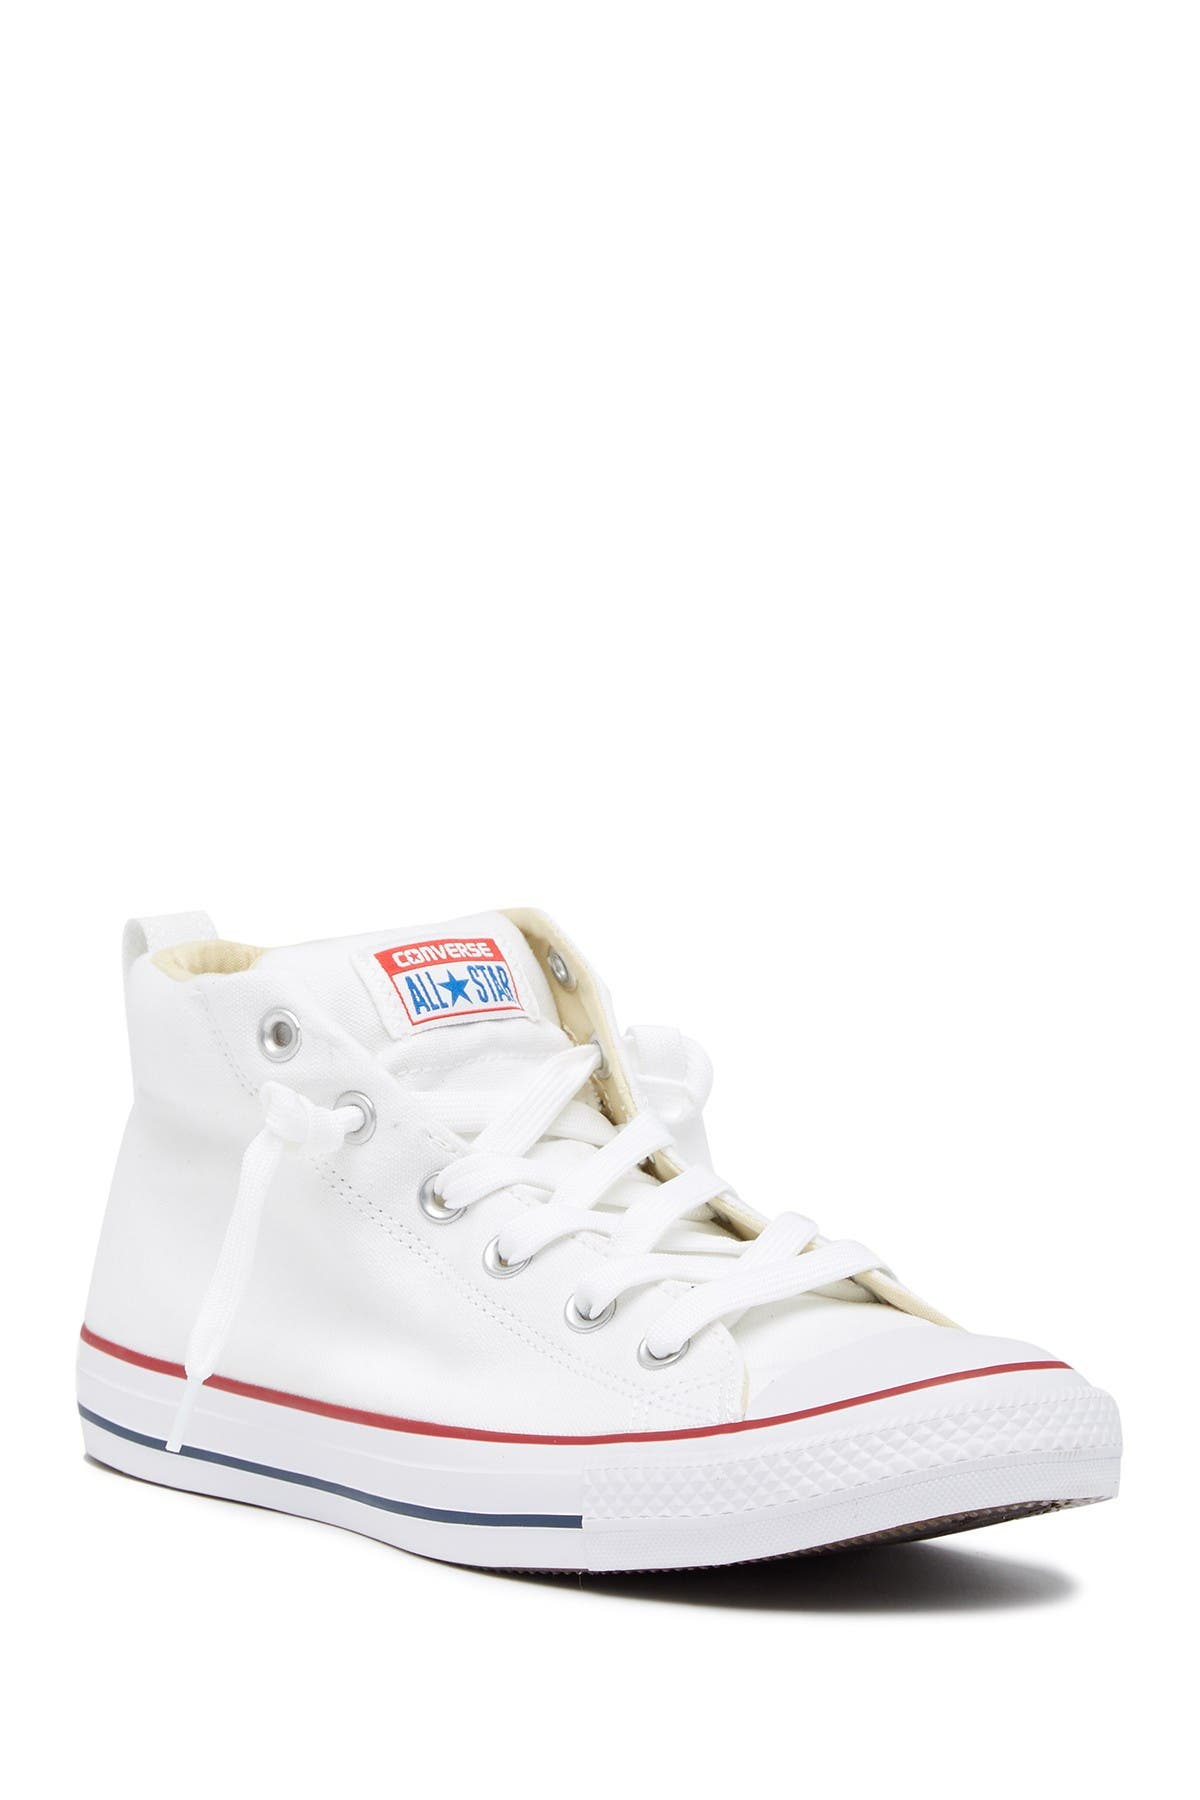 Image of Converse Chuck Taylor Street Mid Sneaker